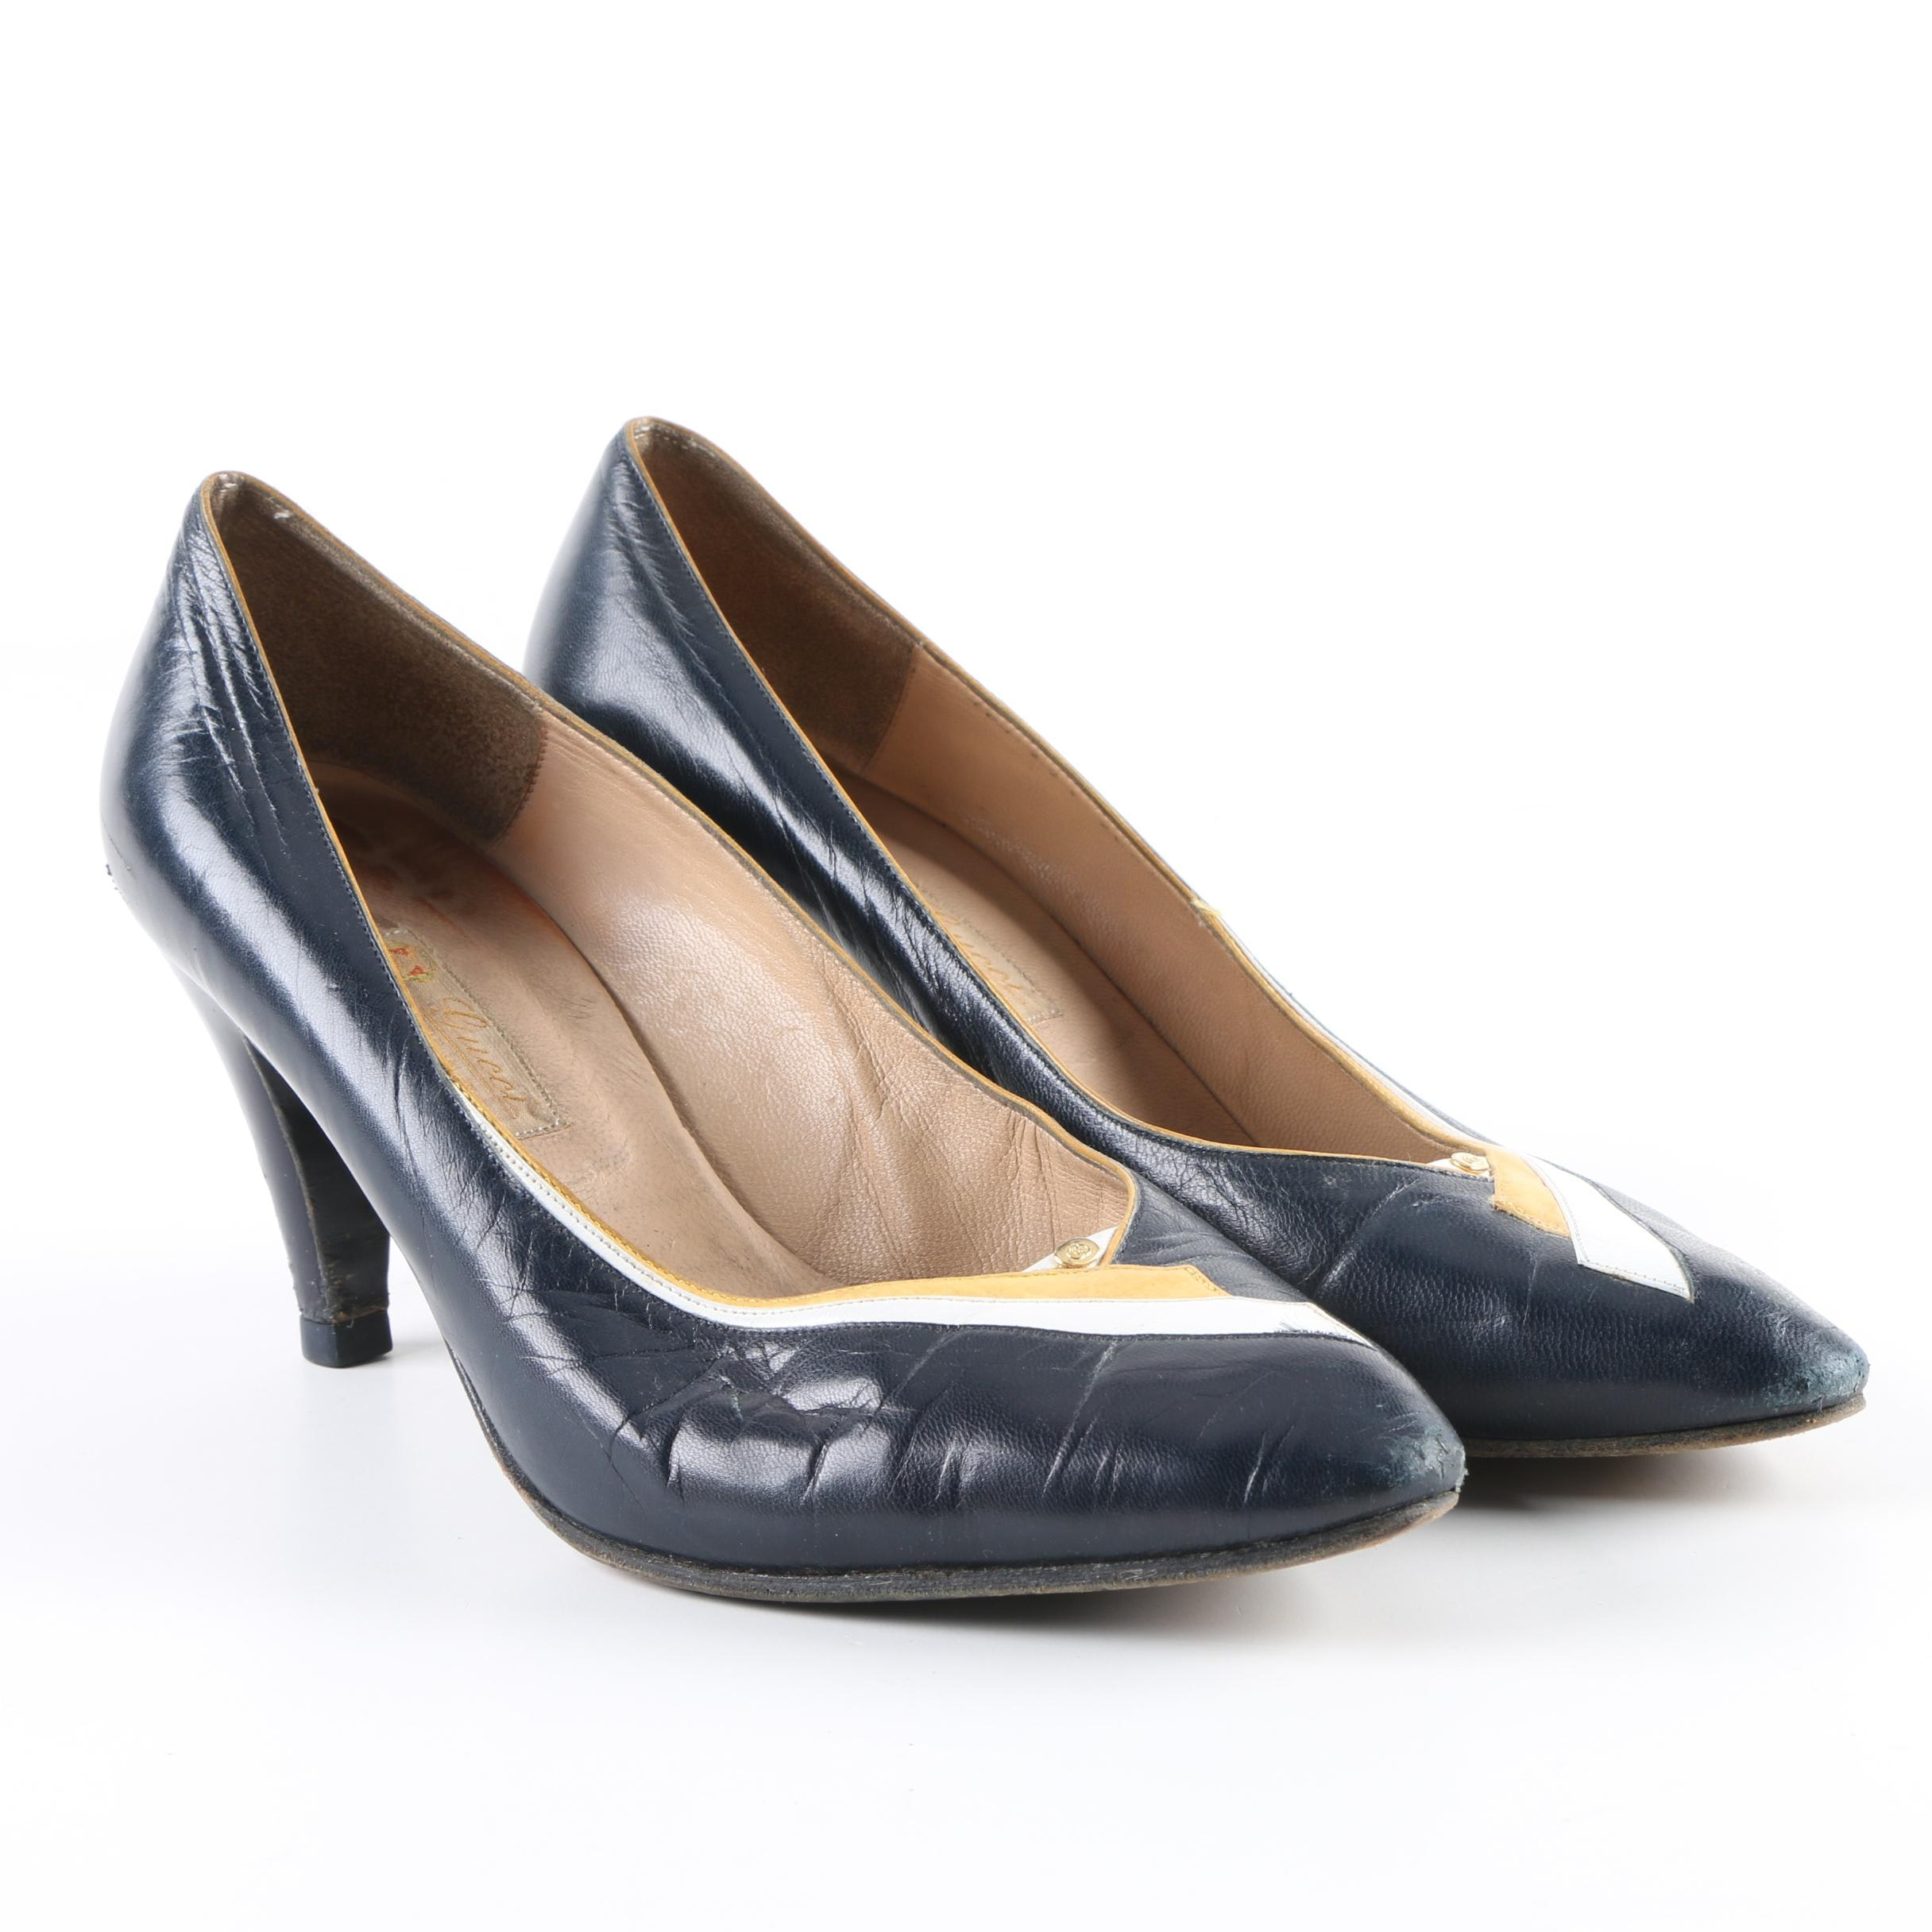 Vintage Gucci Navy Blue Leather Pumps with Original Box